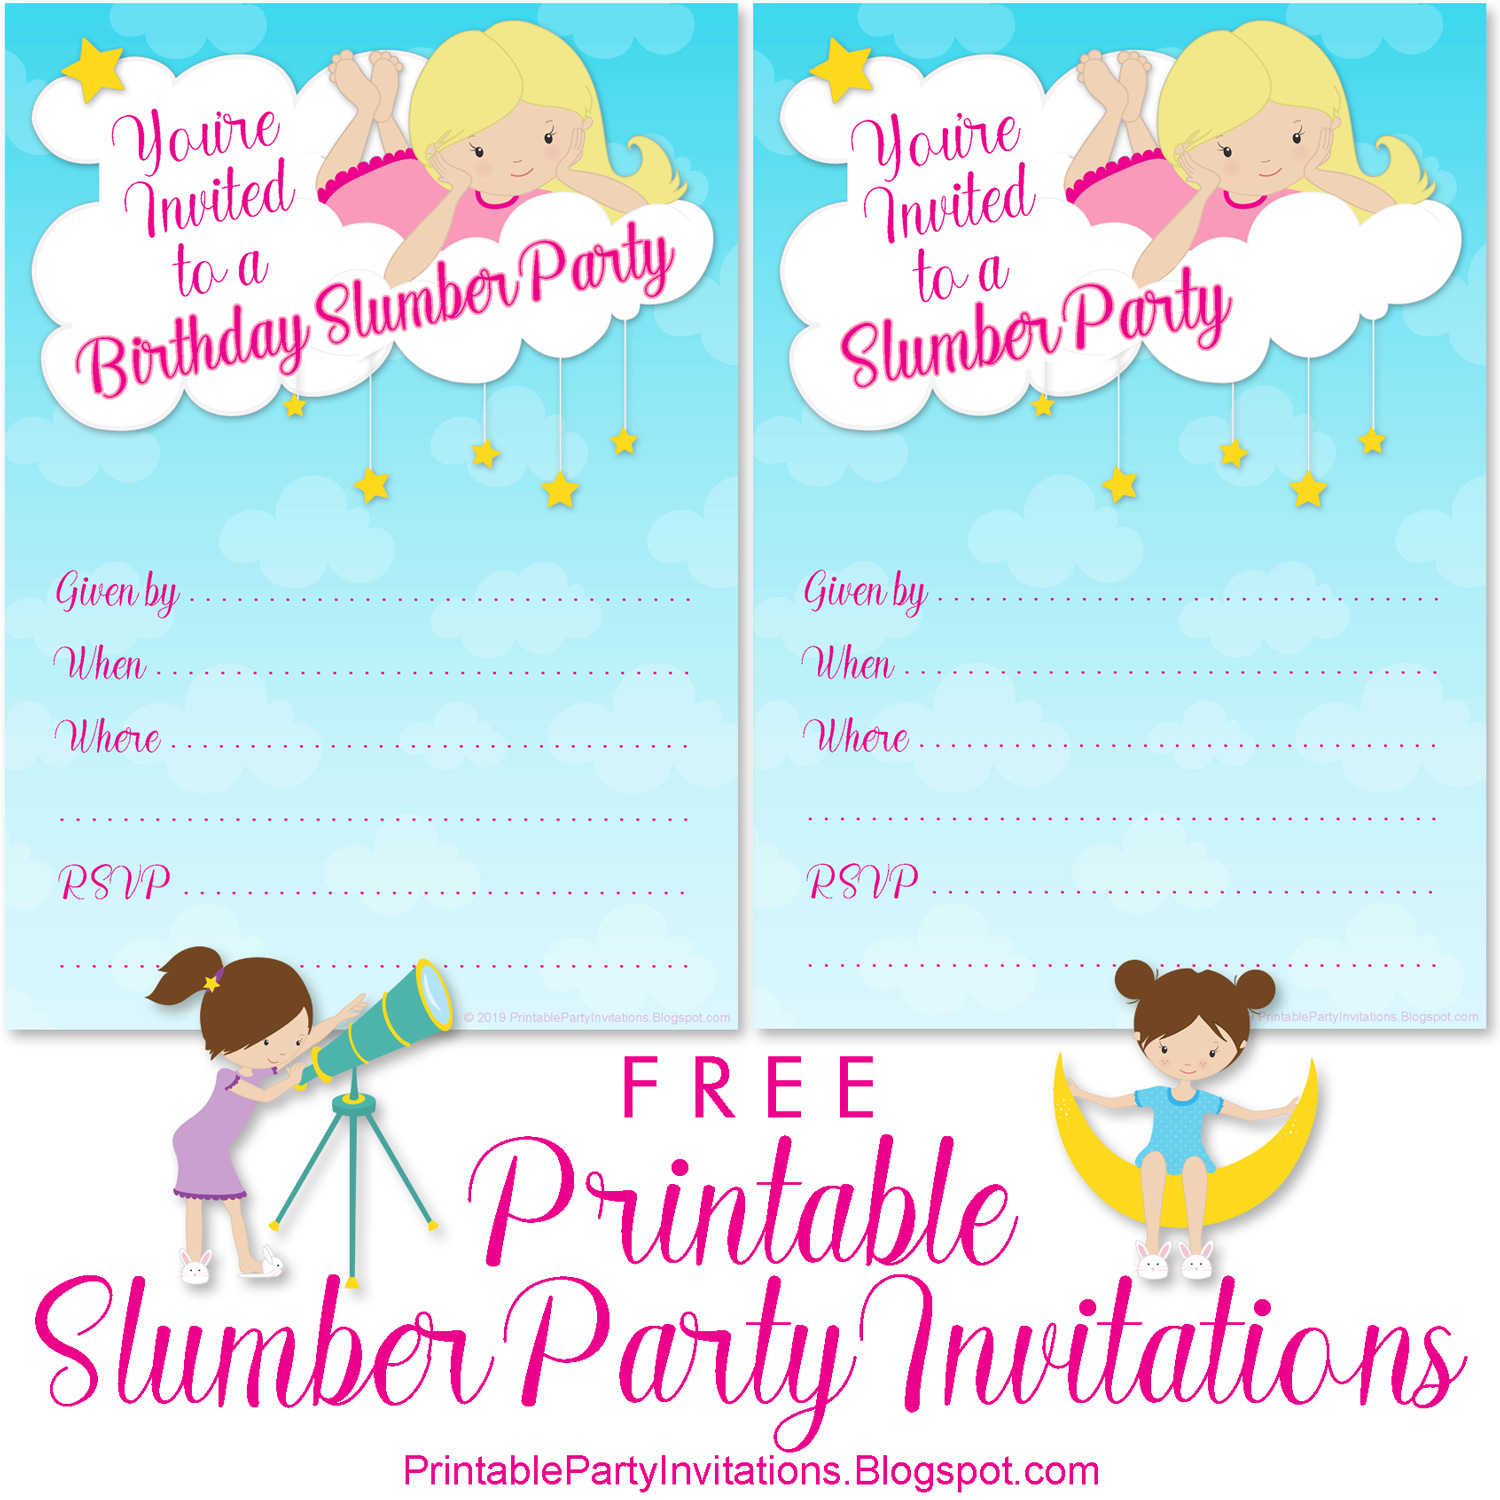 This is a graphic of Slobbery Printable Slumber Party Invitations